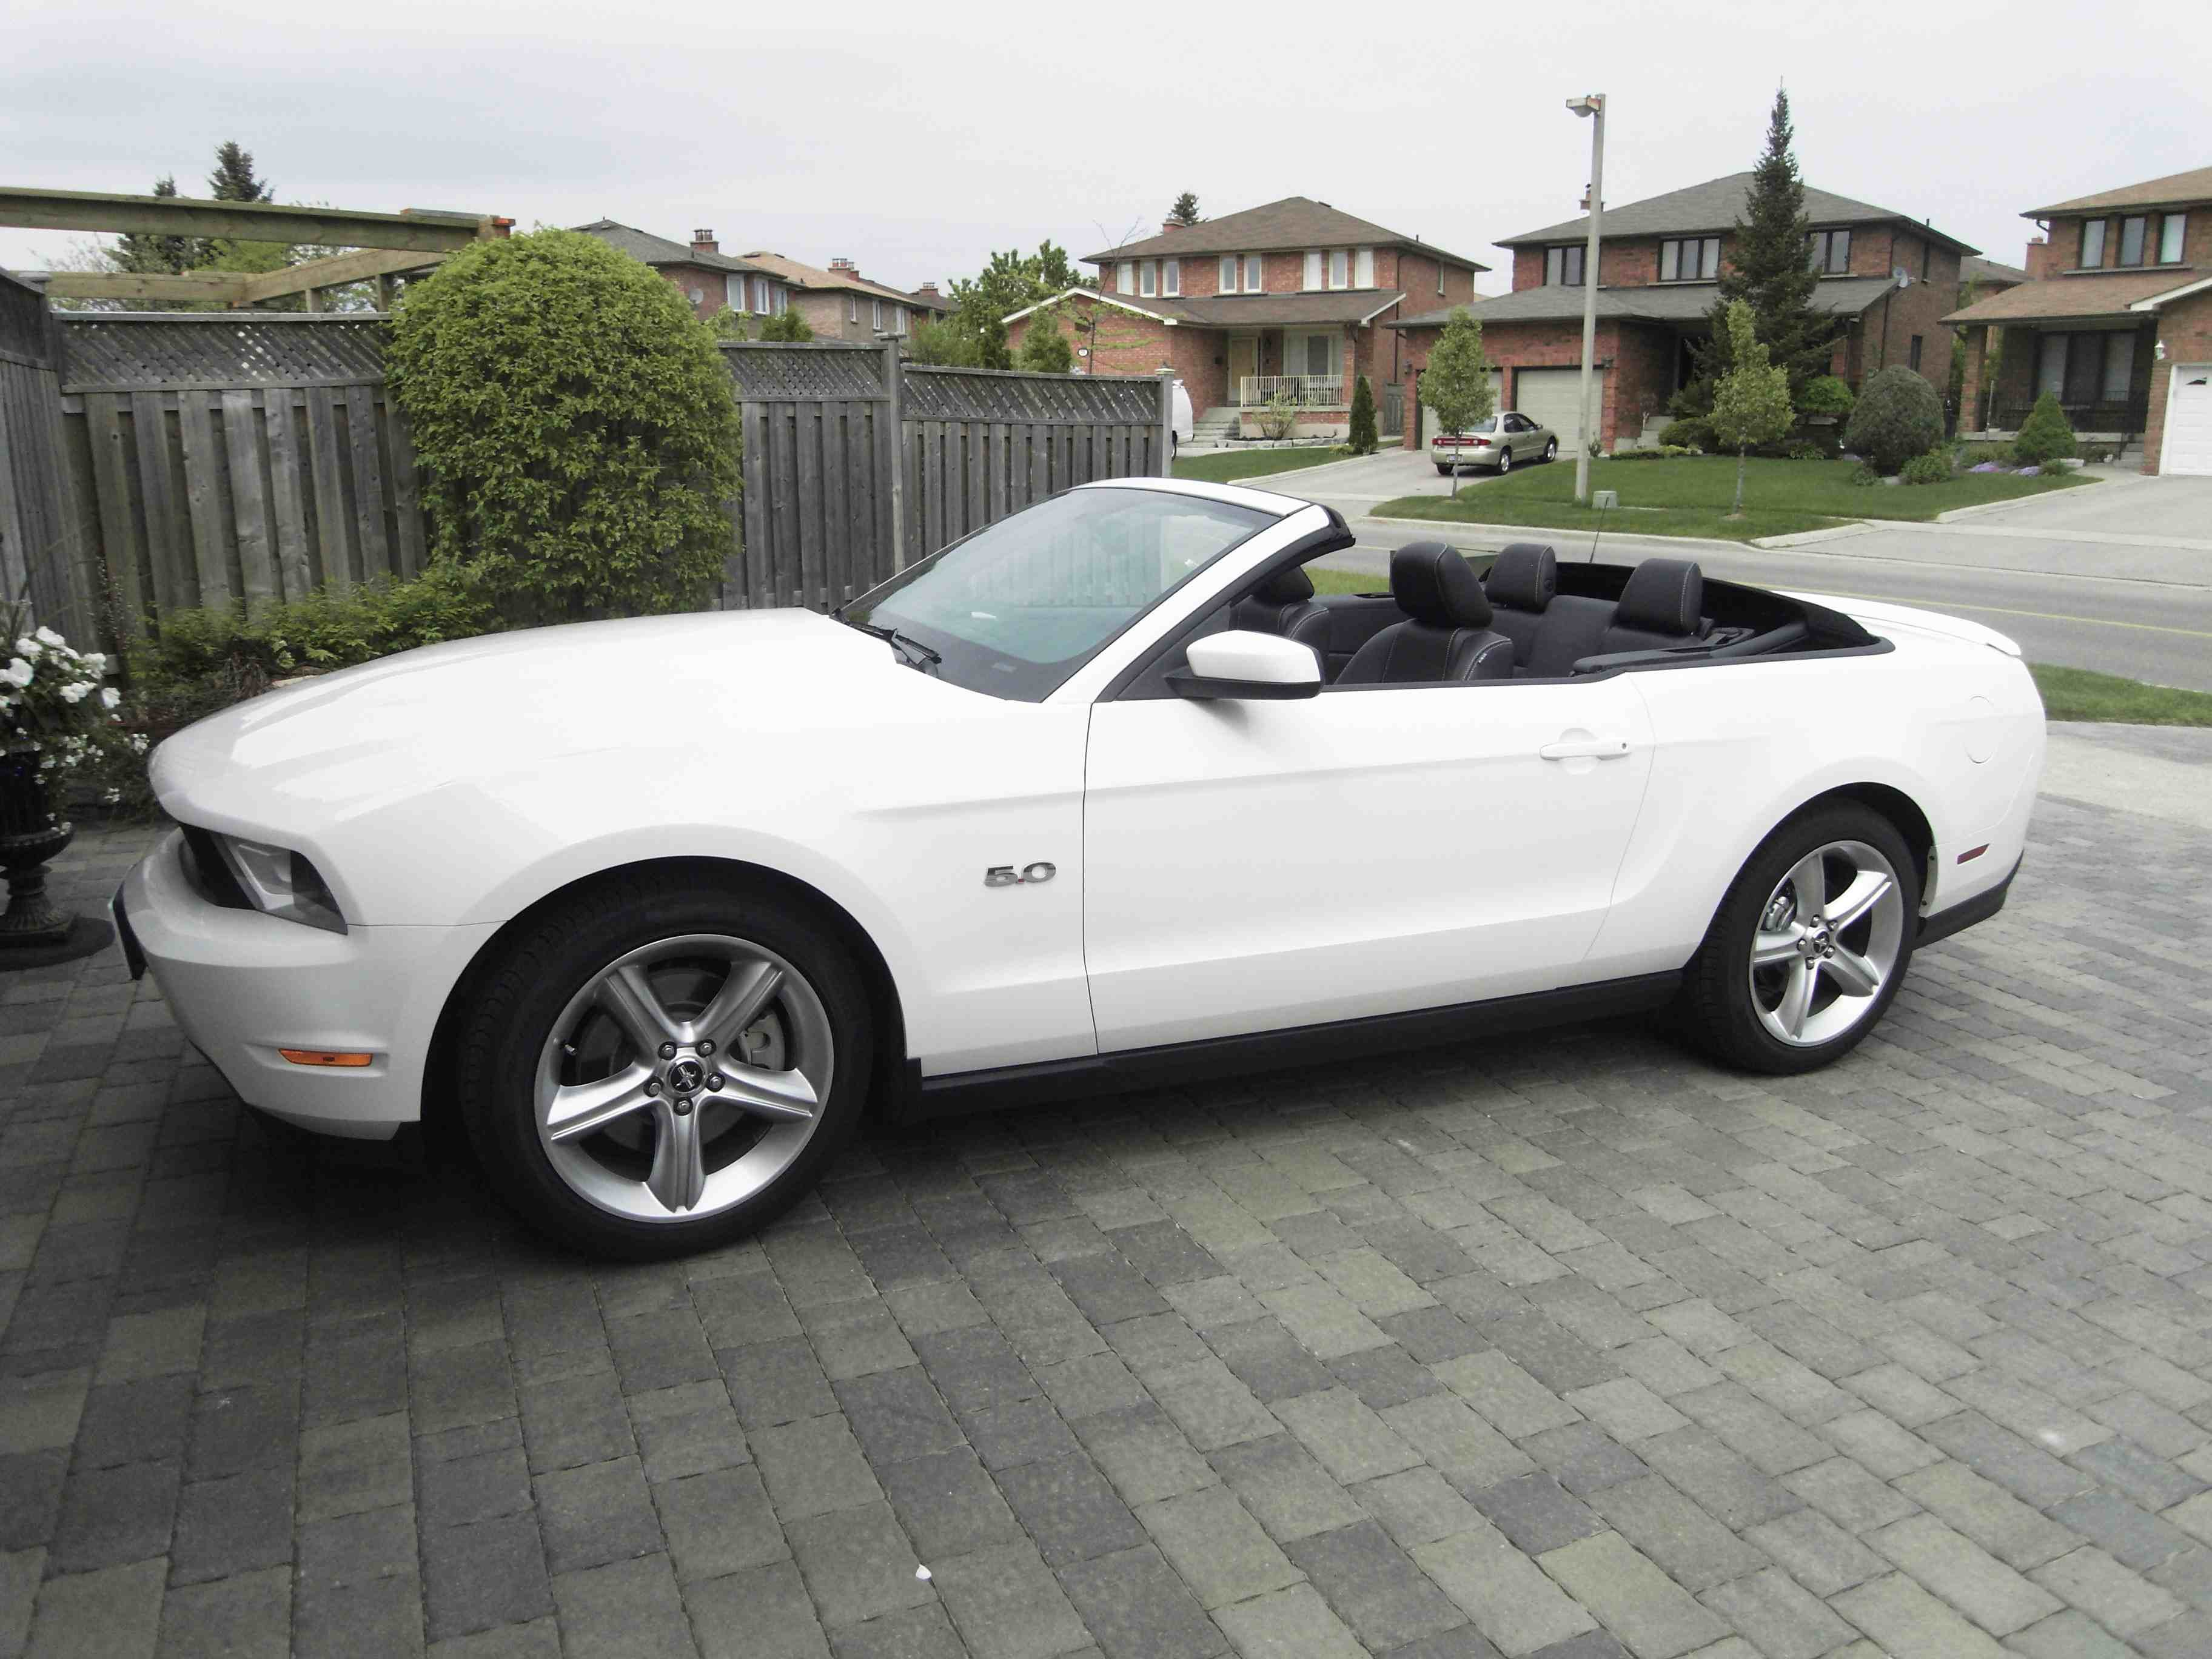 click image for larger version name sdc11856_fbjpg views 16504 size 3804 - Mustang 2012 White